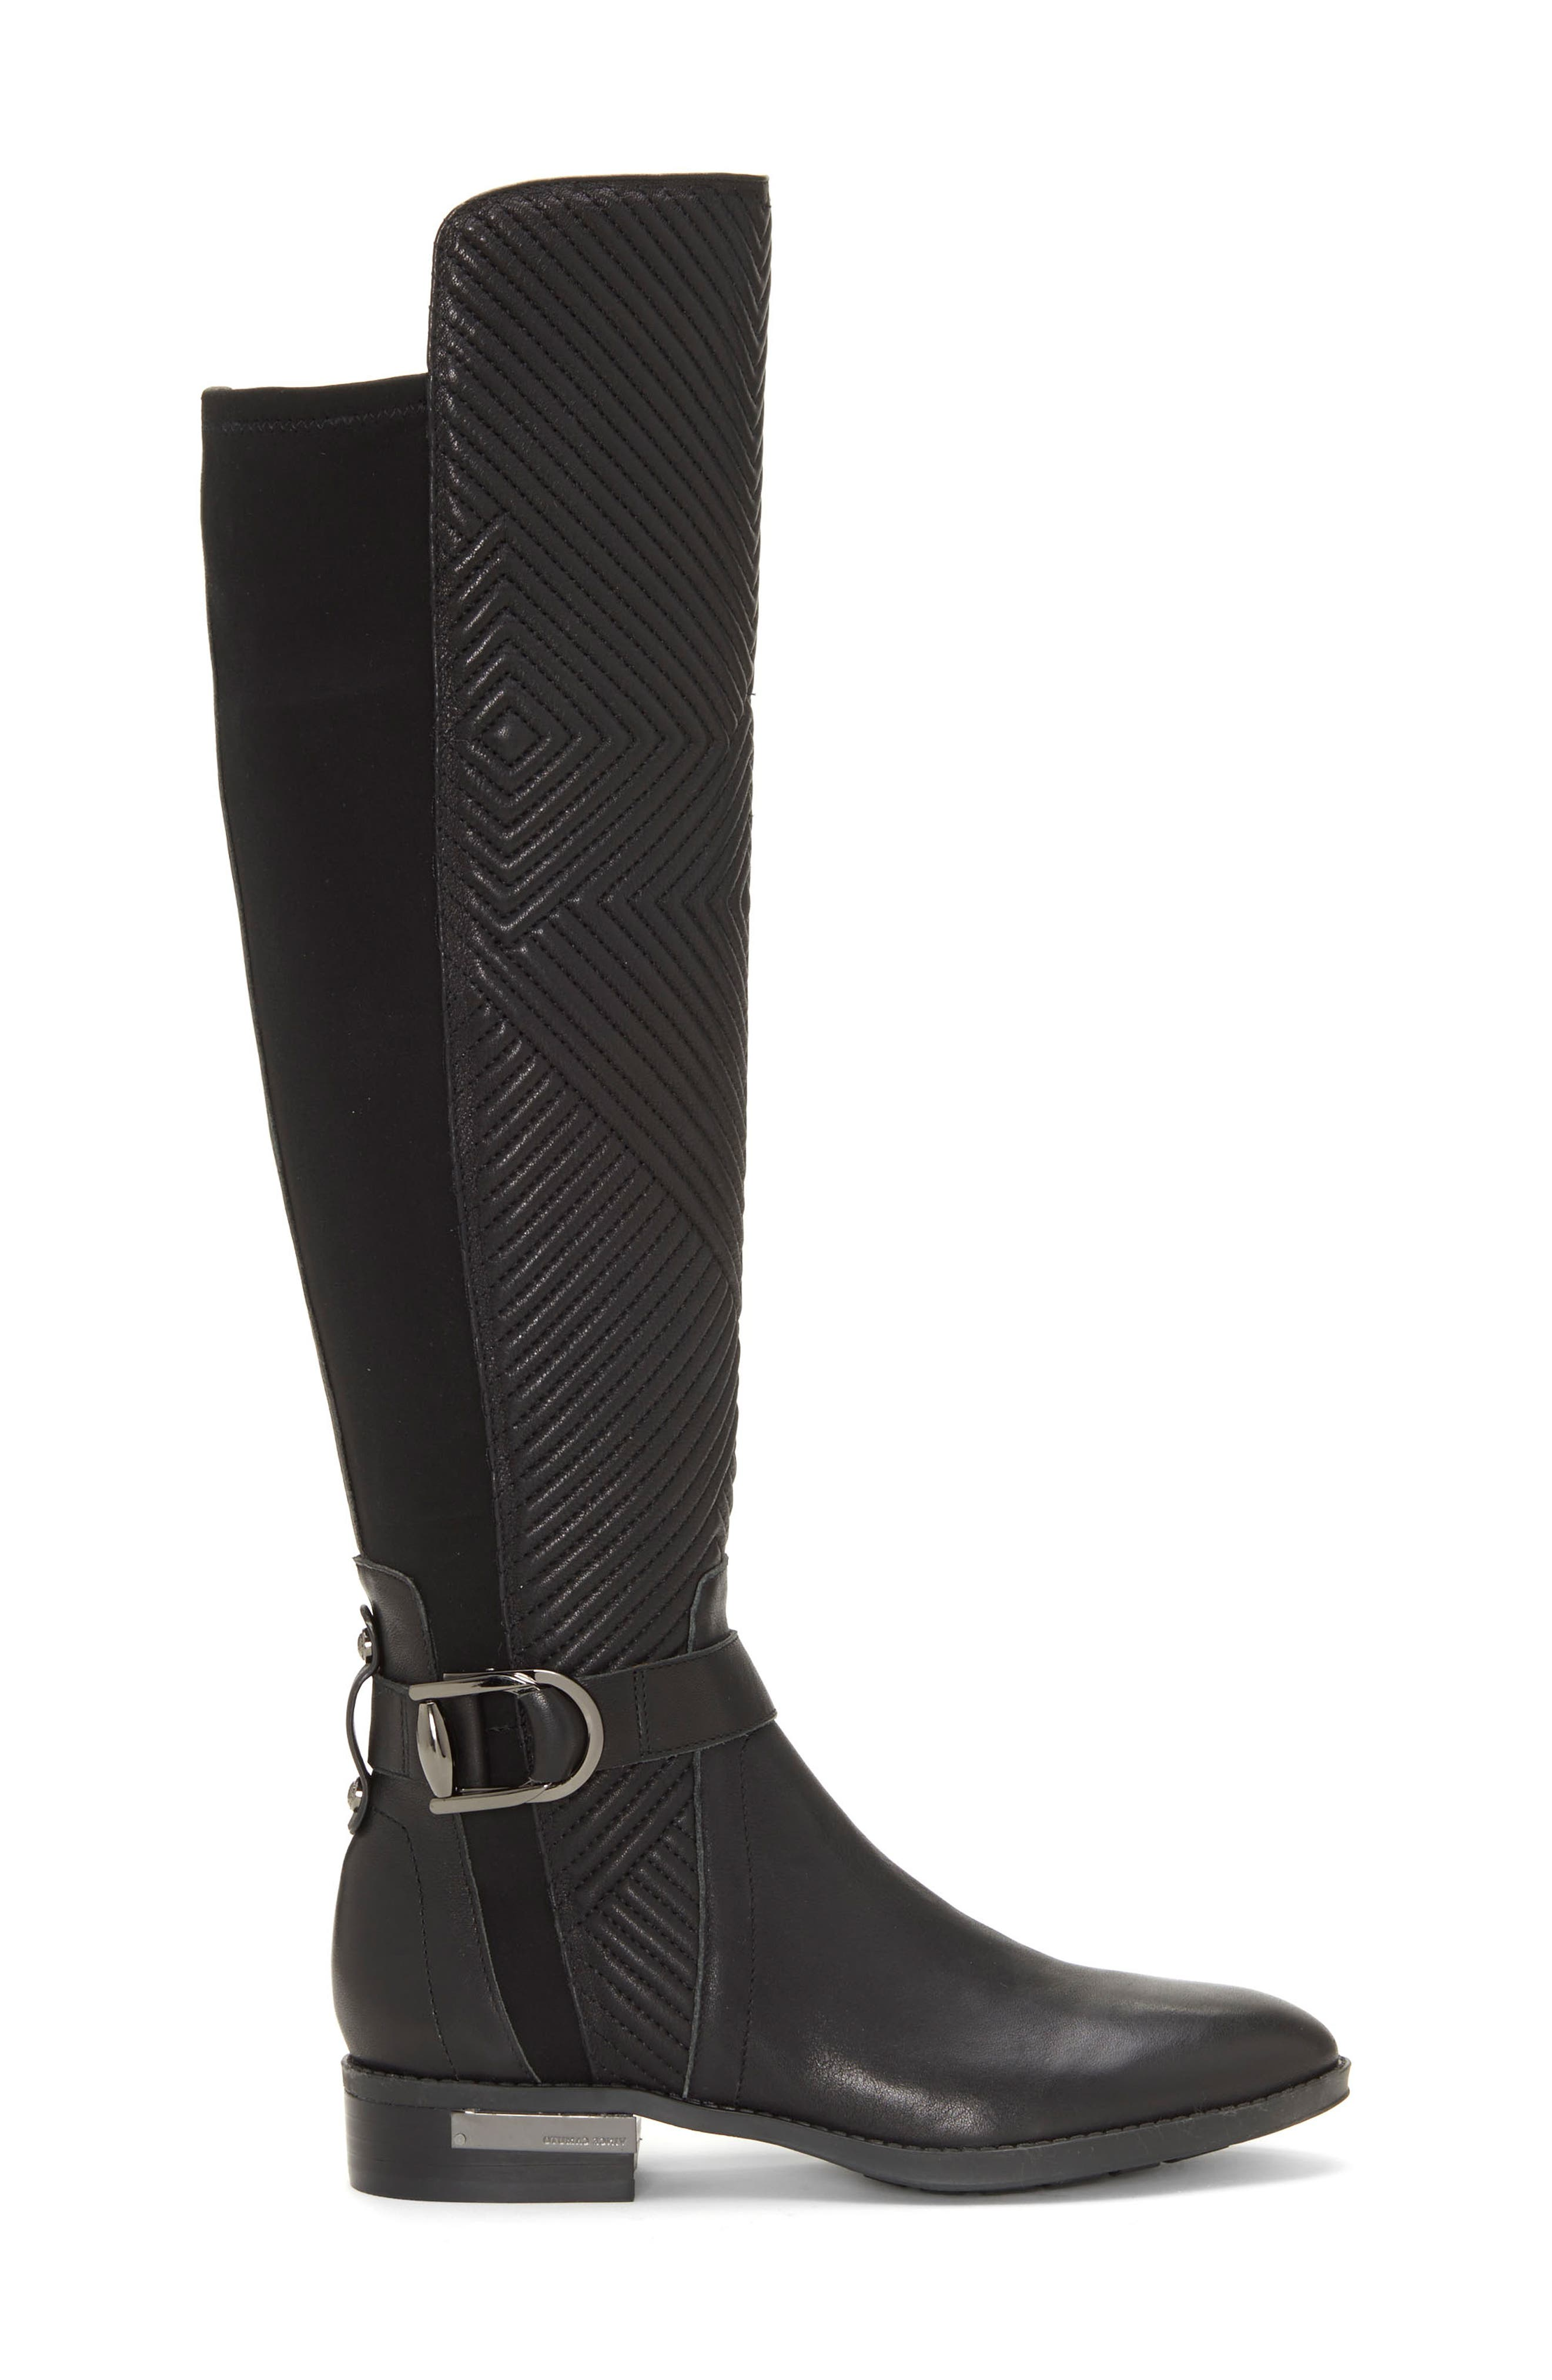 Pordalia Over-the-Knee Boot,                             Alternate thumbnail 3, color,                             BLACK LEATHER WIDE